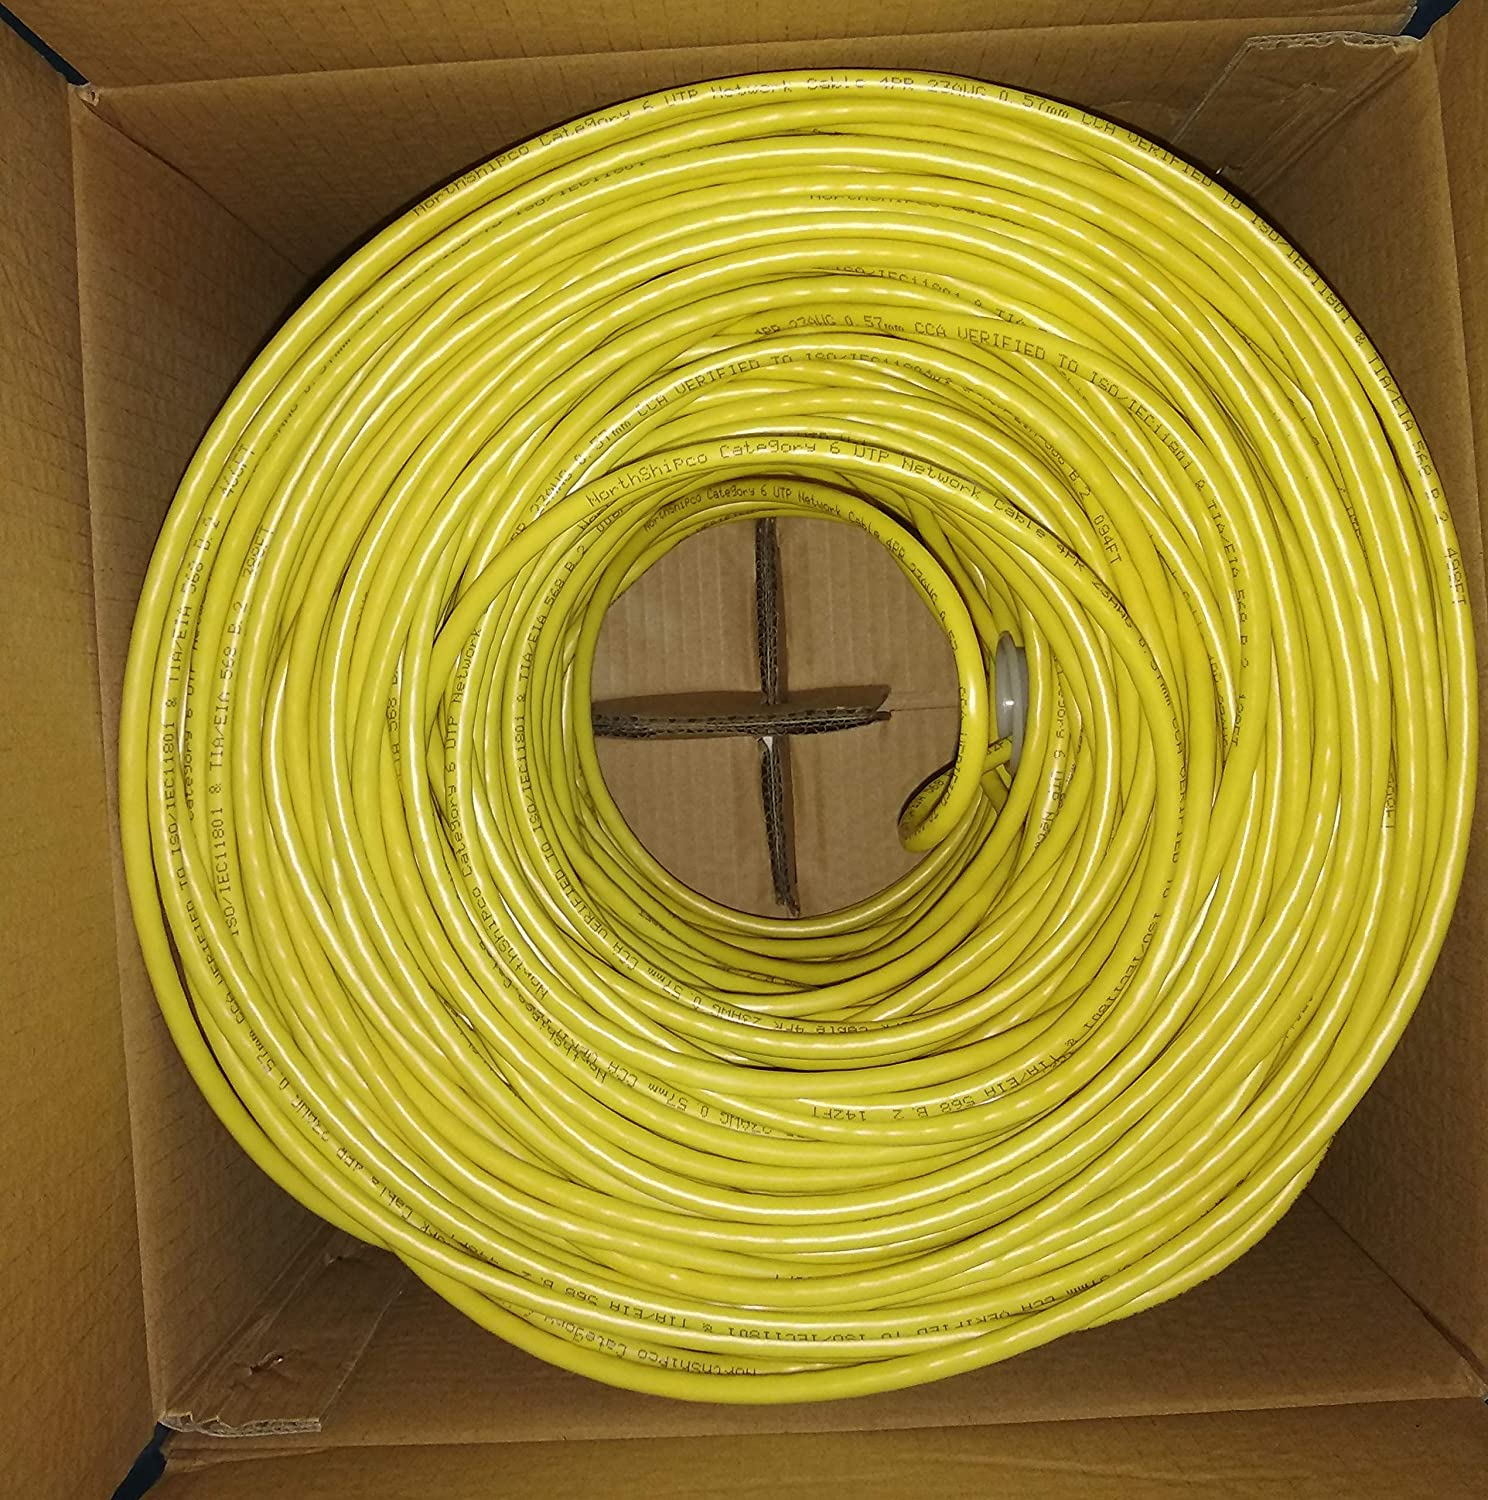 CAT6 UTP 500, Blue 500 ft Conductor: 4 Pairs CCA 0.57mm Insulation: HD-PE Filler: PE Cross Jacket: PVC Working Distance: 100-120M 23awg